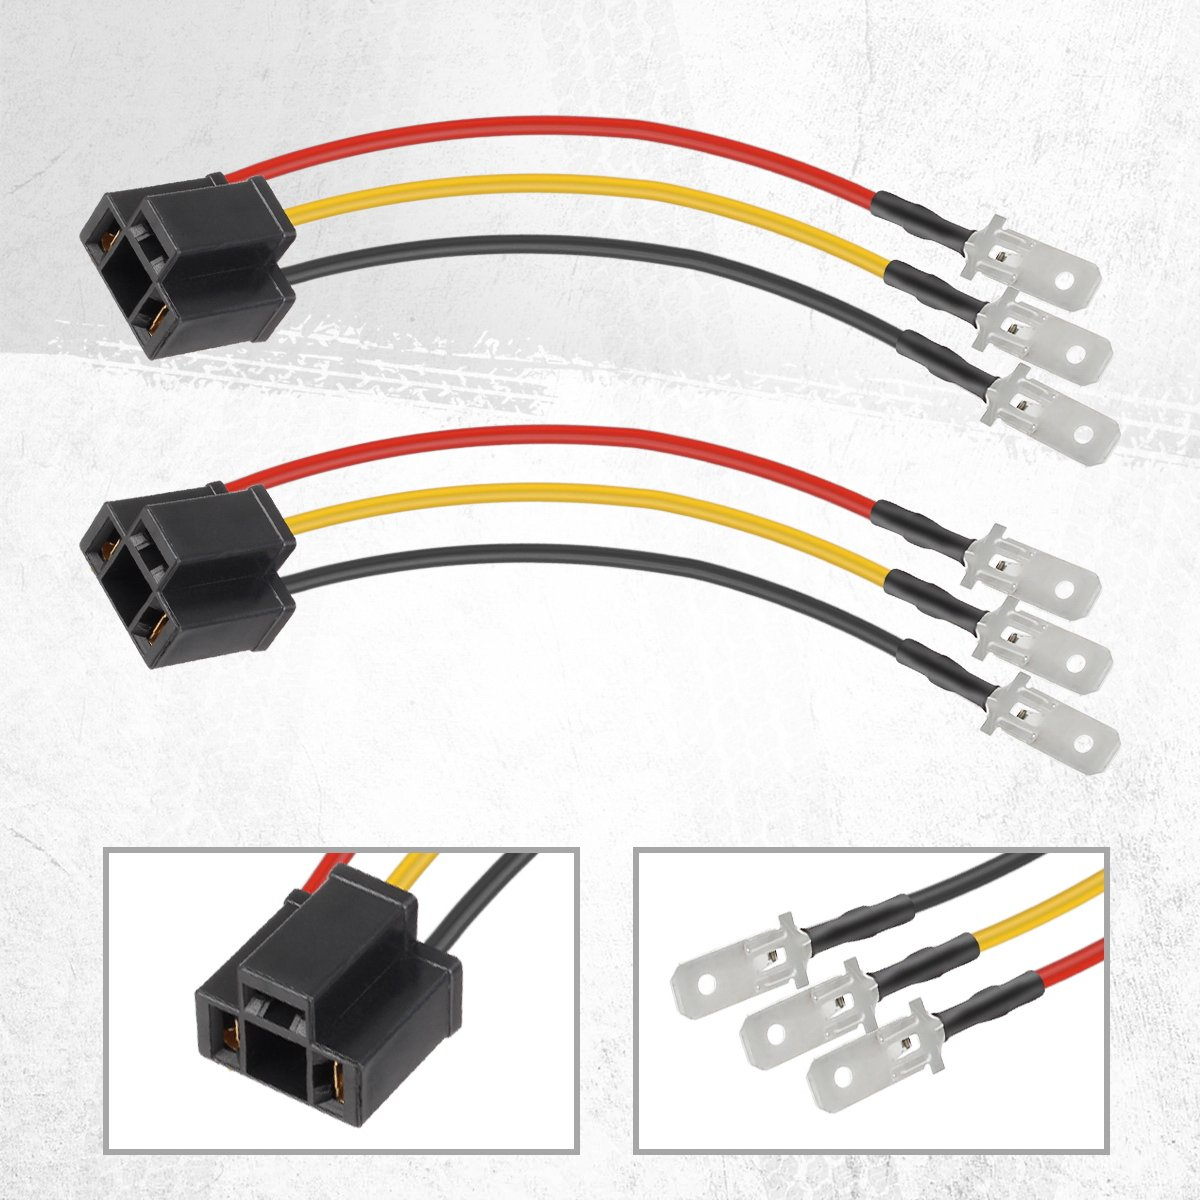 71wQaUXYvlL._SL1200_ amazon com partsam h4 9003 hb2 wire wiring harness sockets for 4\